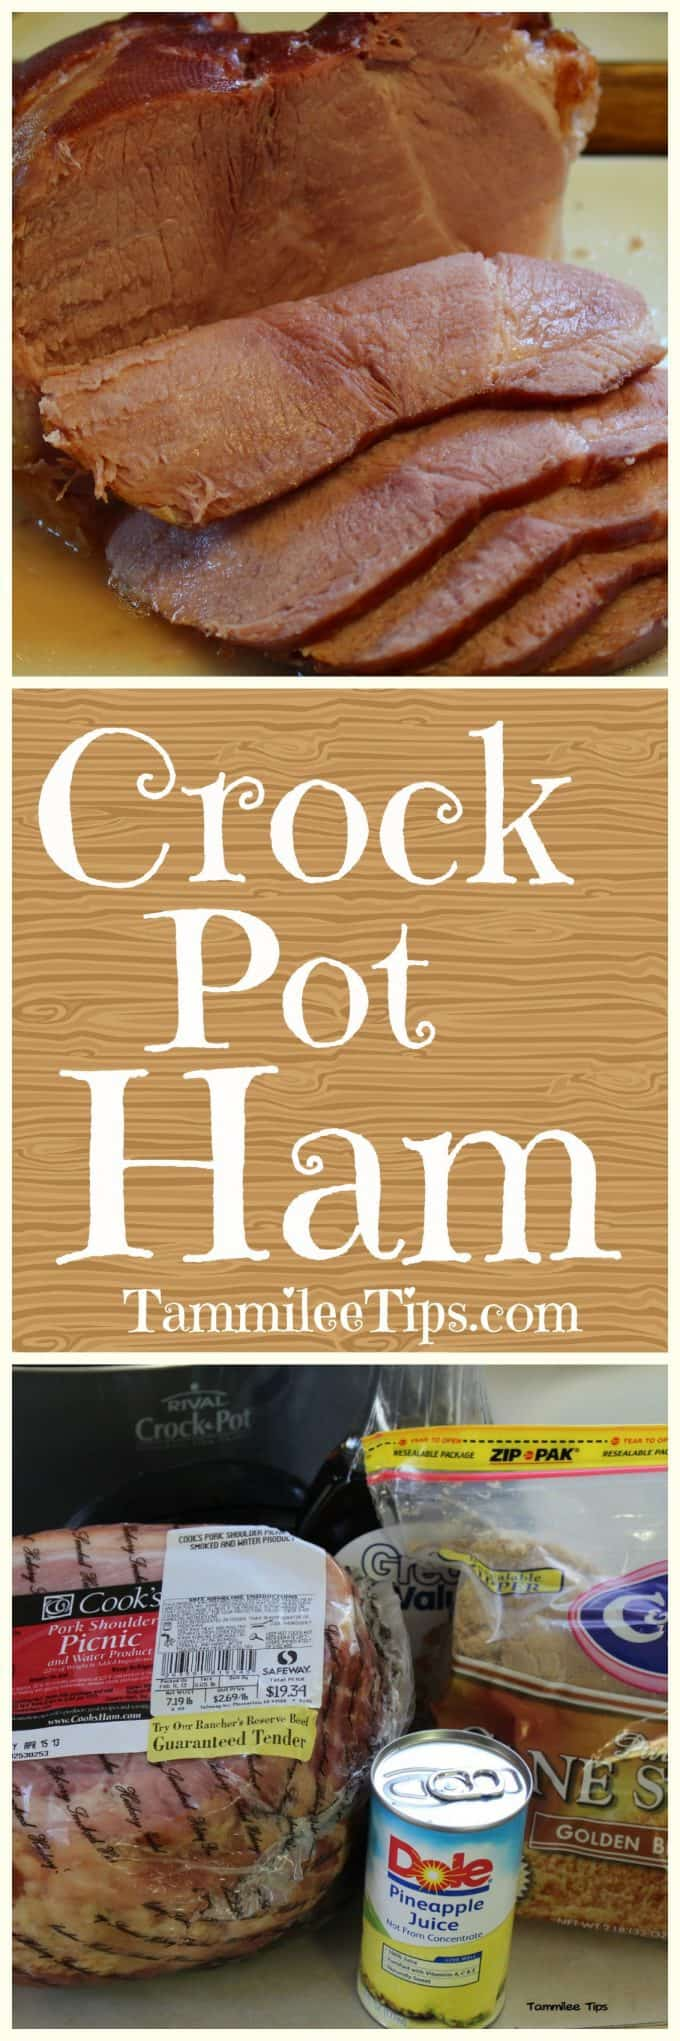 Super easy Crock Pot Ham Recipe! Make holiday prep a breeze with this easy slow cooker recipe! The perfect combination of pre cooked spiral ham, brown sugar, and pineapple juice! Add in pineapple slices for a fun addition. Great for Thanksgiving, Christmas, Easter or any day of the week!